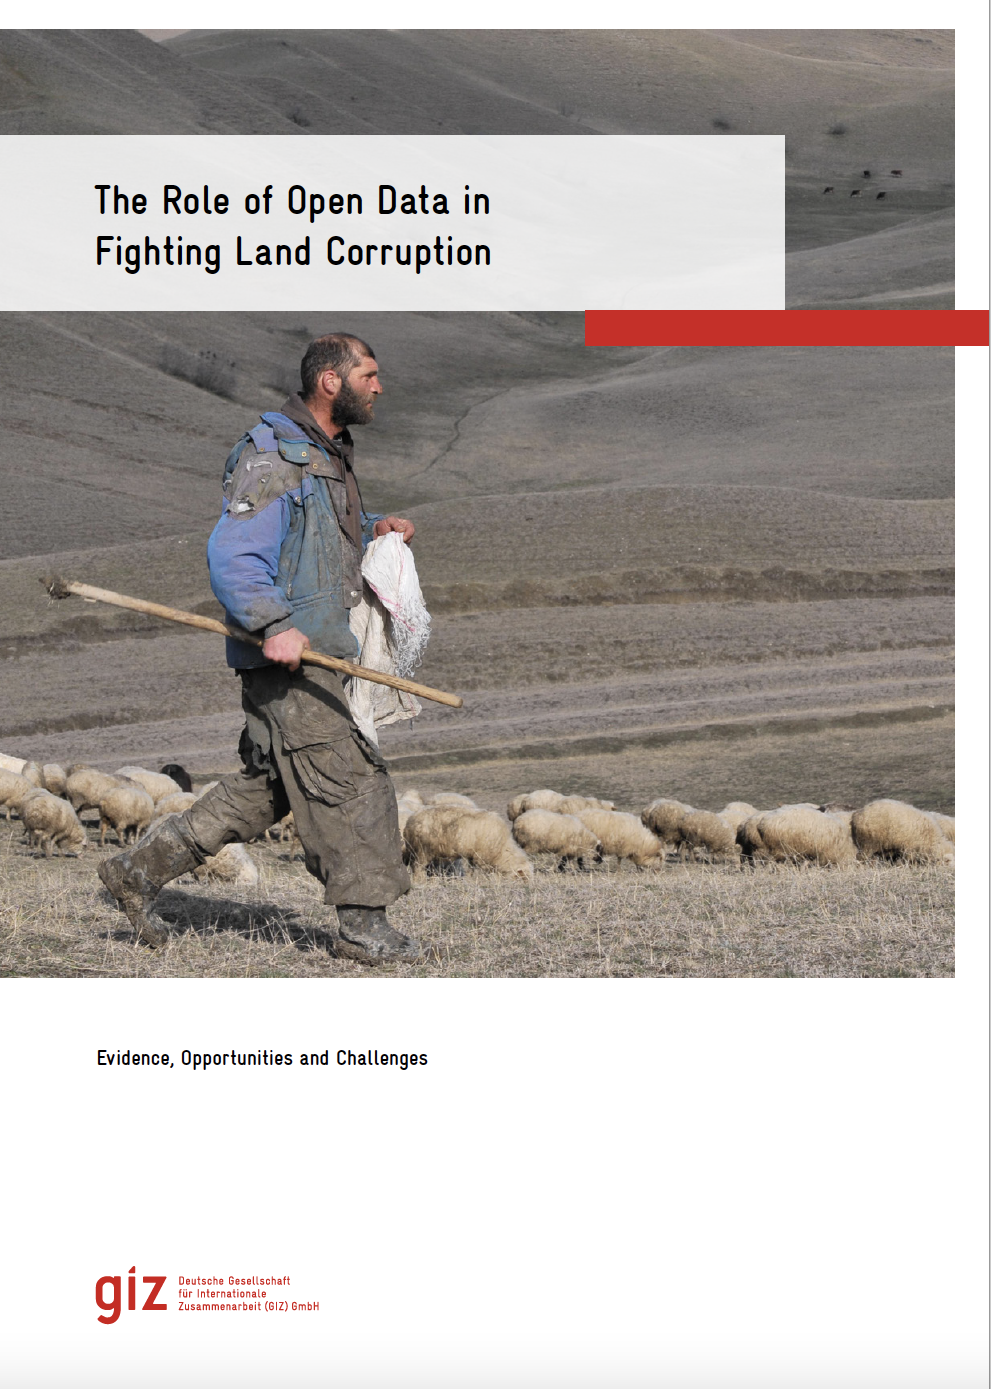 The Role of Open Data in Fighting Land Corruption